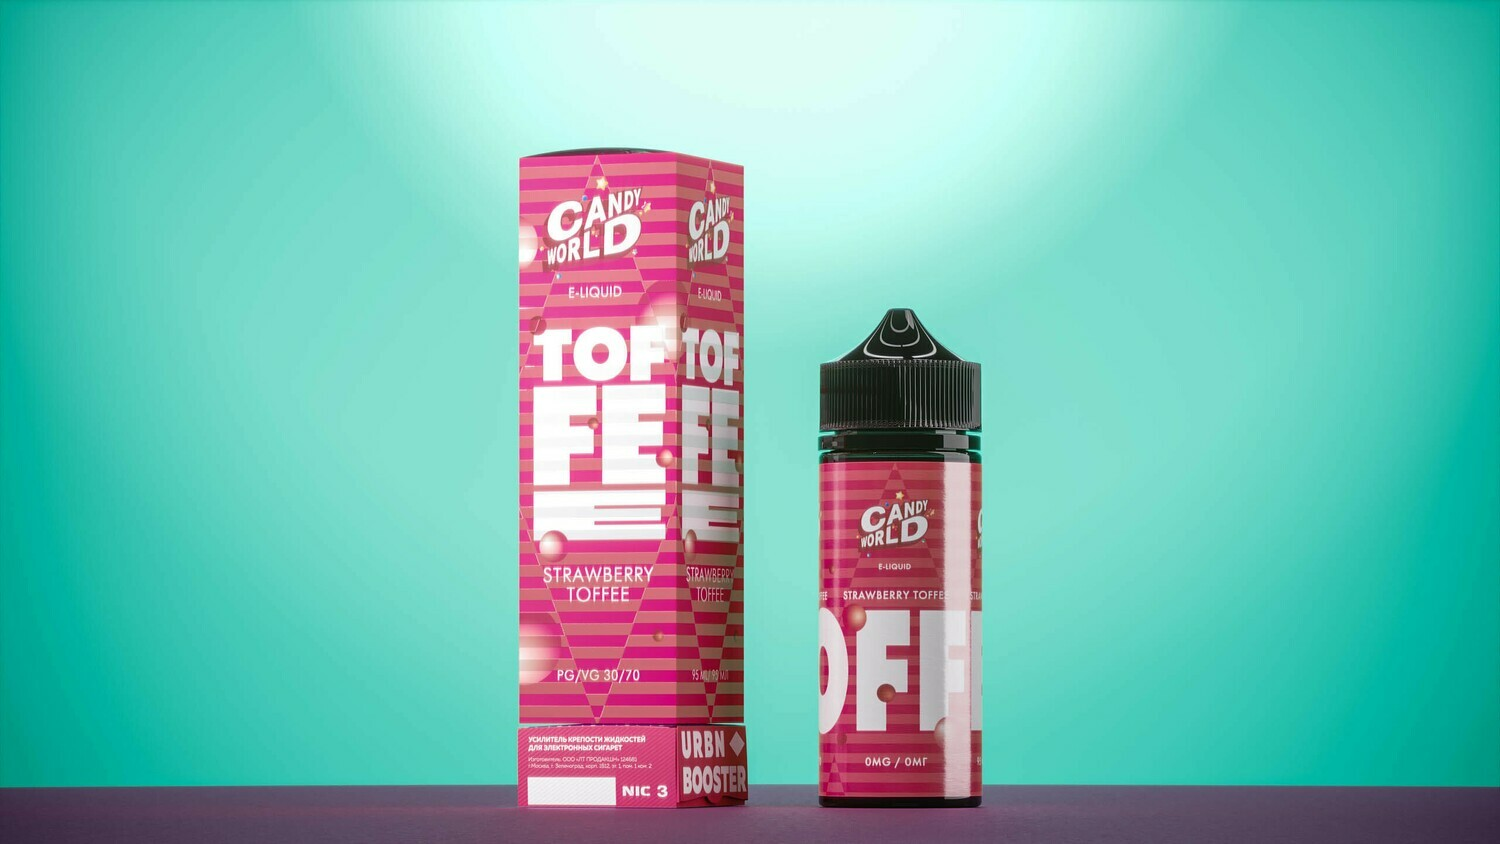 CANDY WORLD BY URBN: STRAWBERRY TOFFEE 95ML